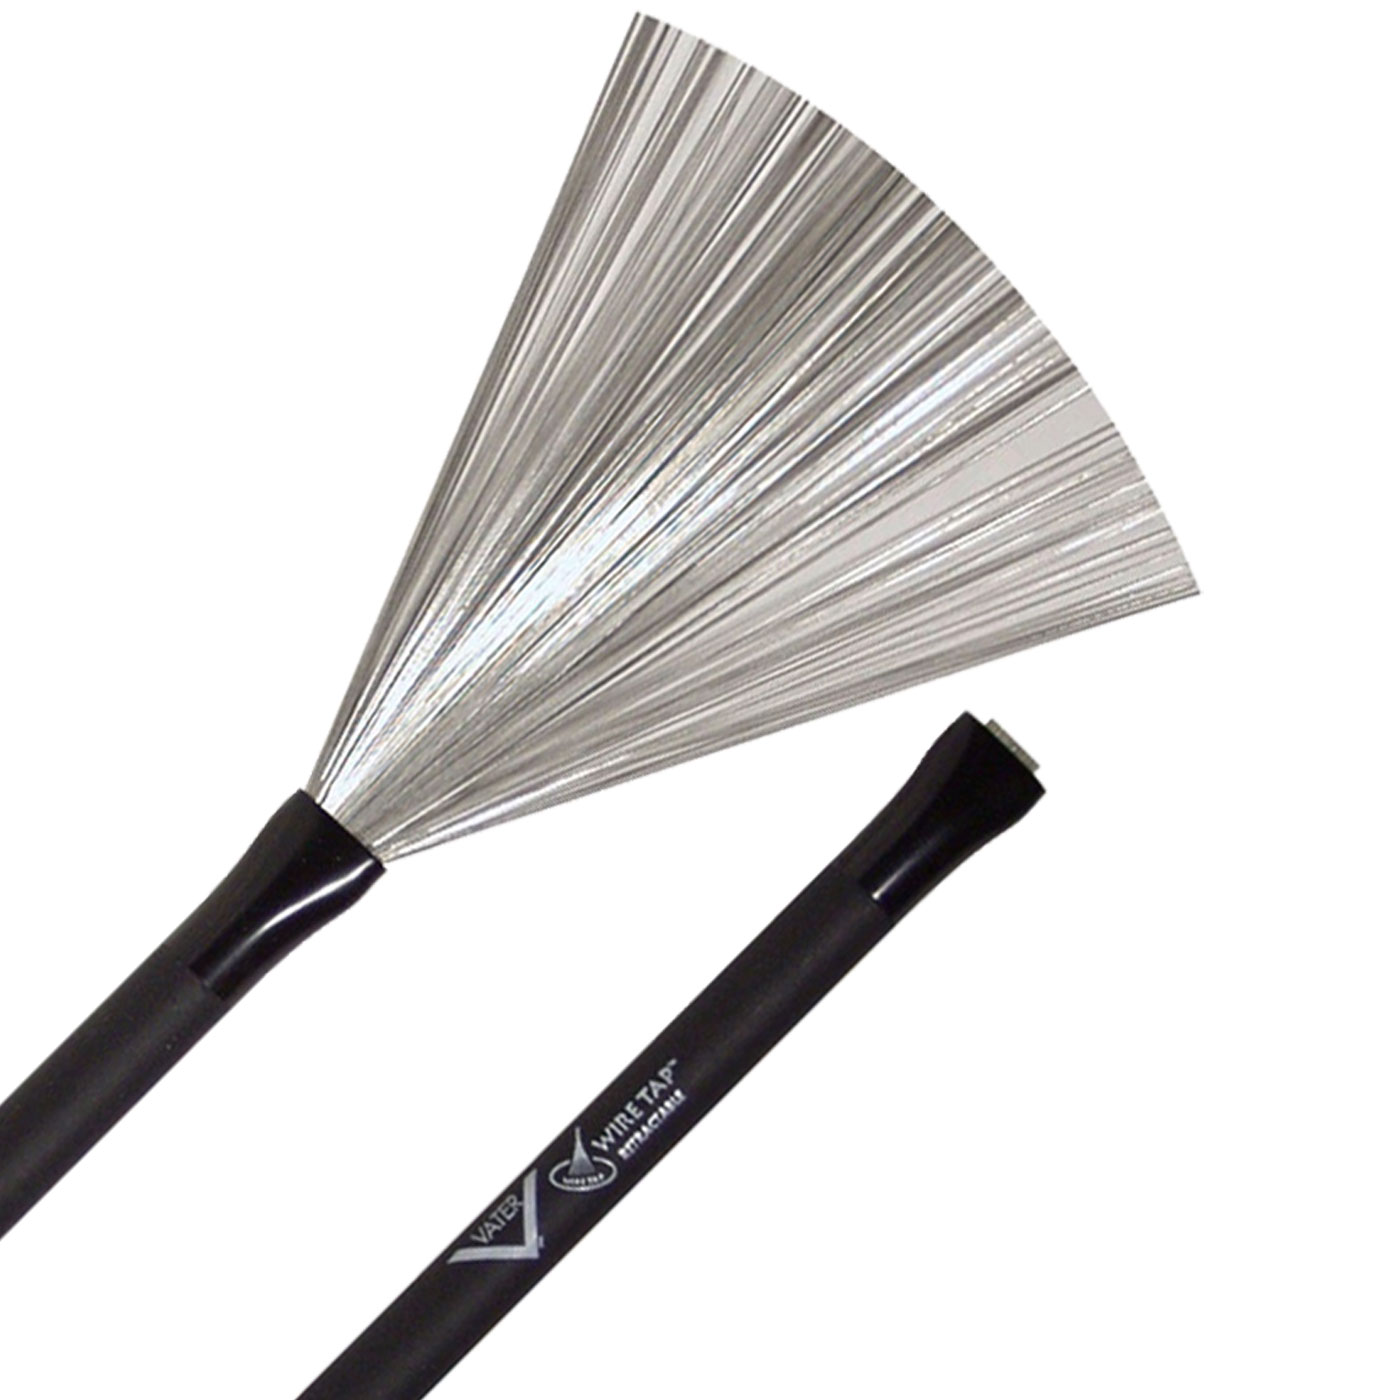 Vater Retractable Wire Brushes